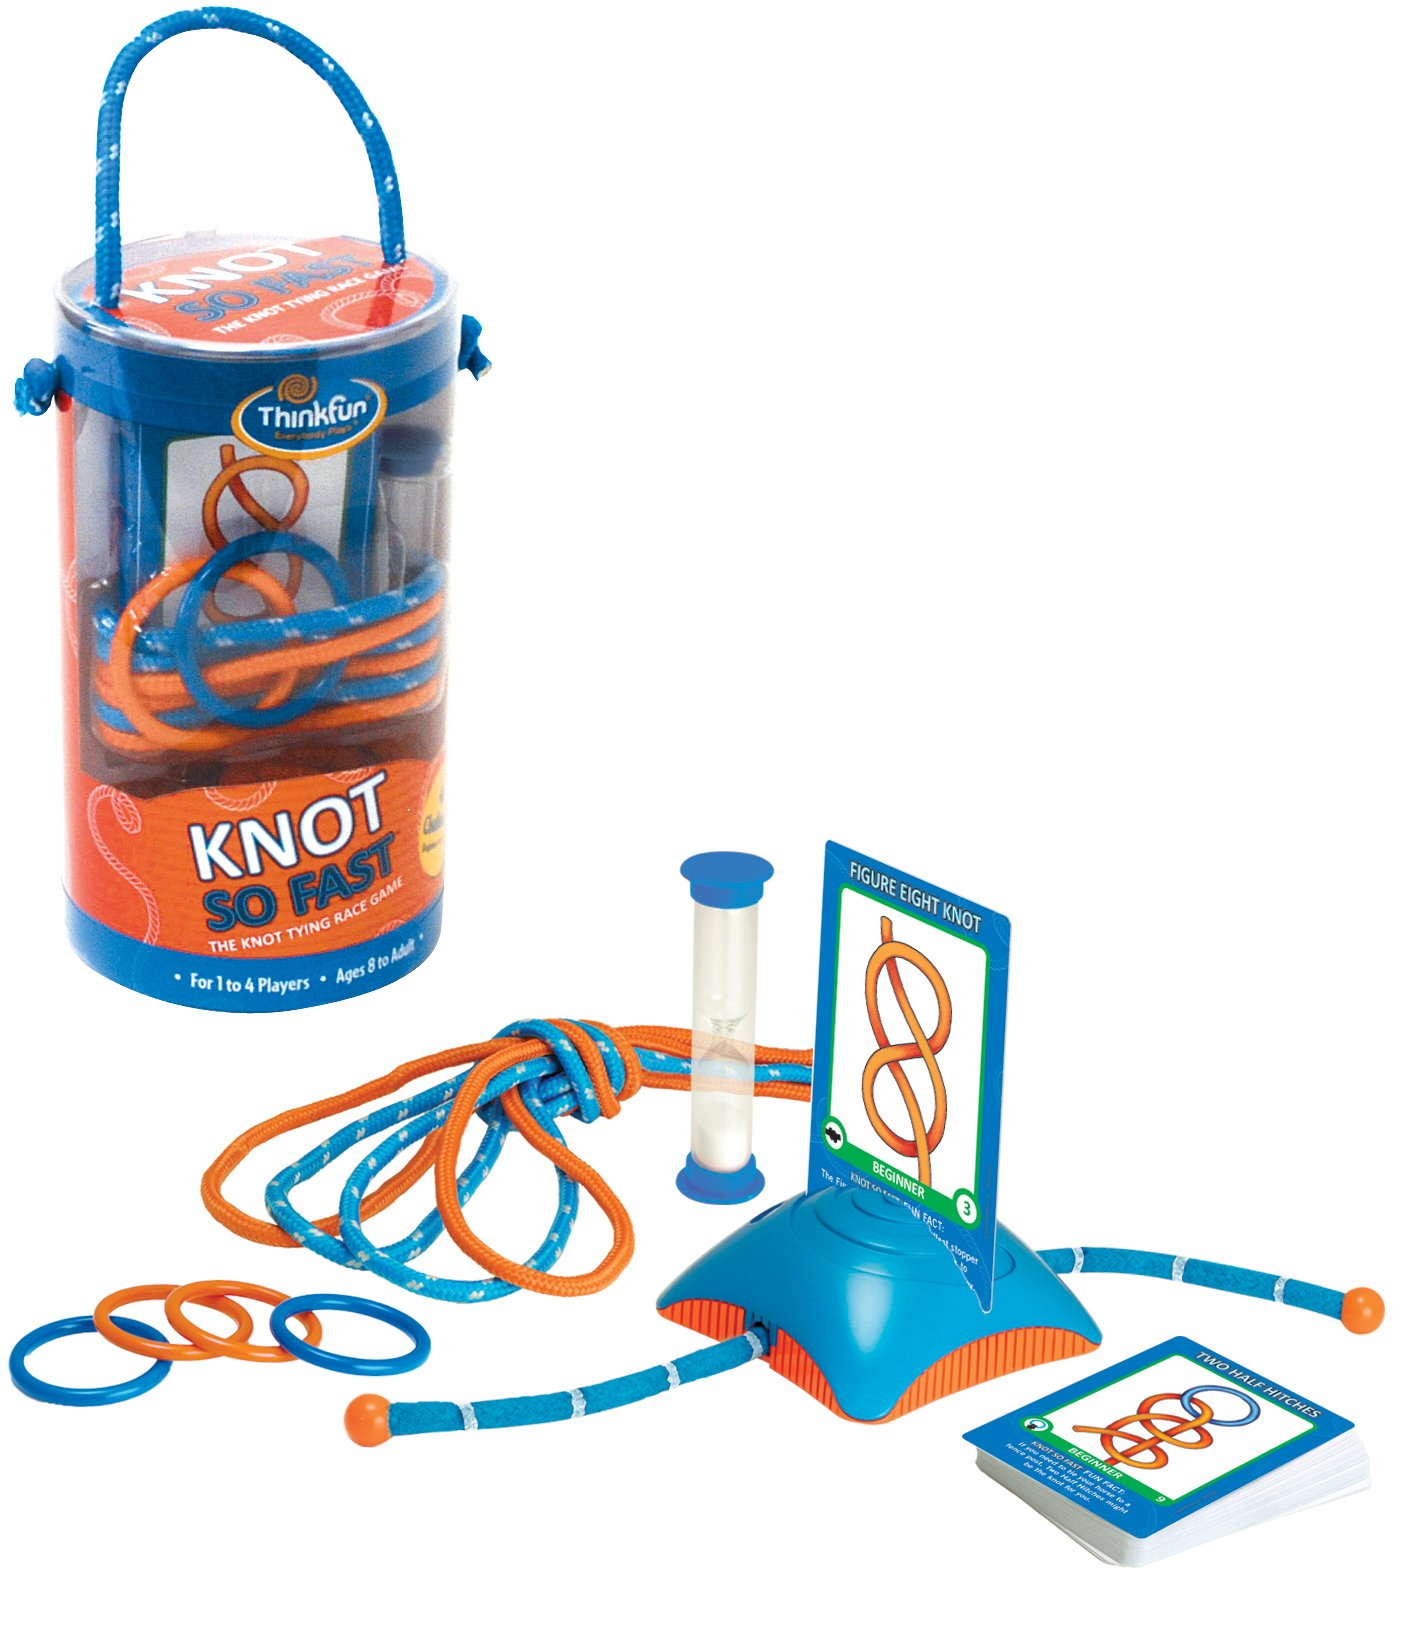 Cheap Rope For Knot Tying Find Deals On Line At Bowline Diagram Clipart Best Get Quotations Think Fun So Fast Innovative Game With 40 Challenges